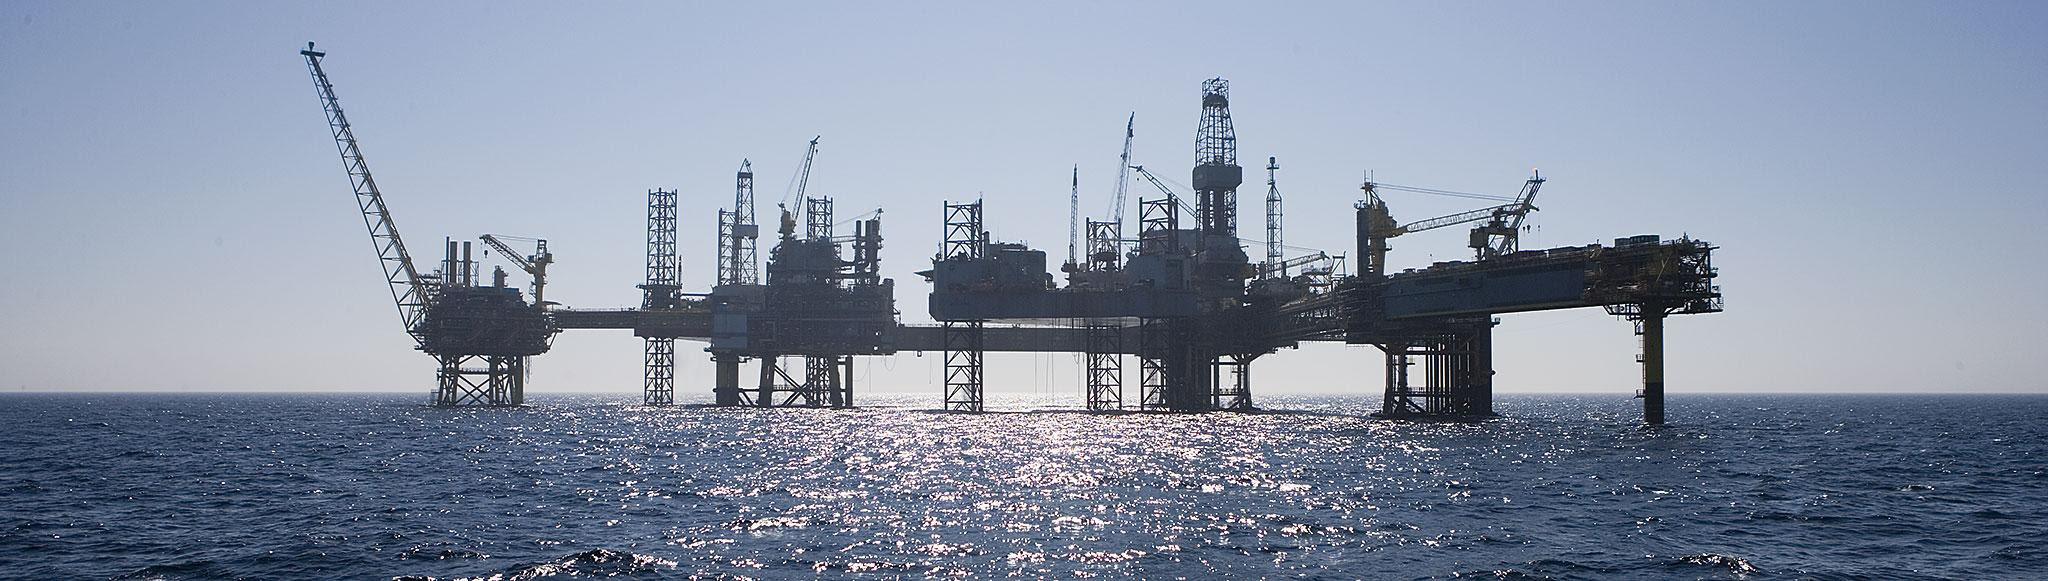 http://www07.abb.com/images/librariesprovider104/Industry-solutions/Oil-and-gas/dbu_platform_dan_field_11.jpg?sfvrsn=1